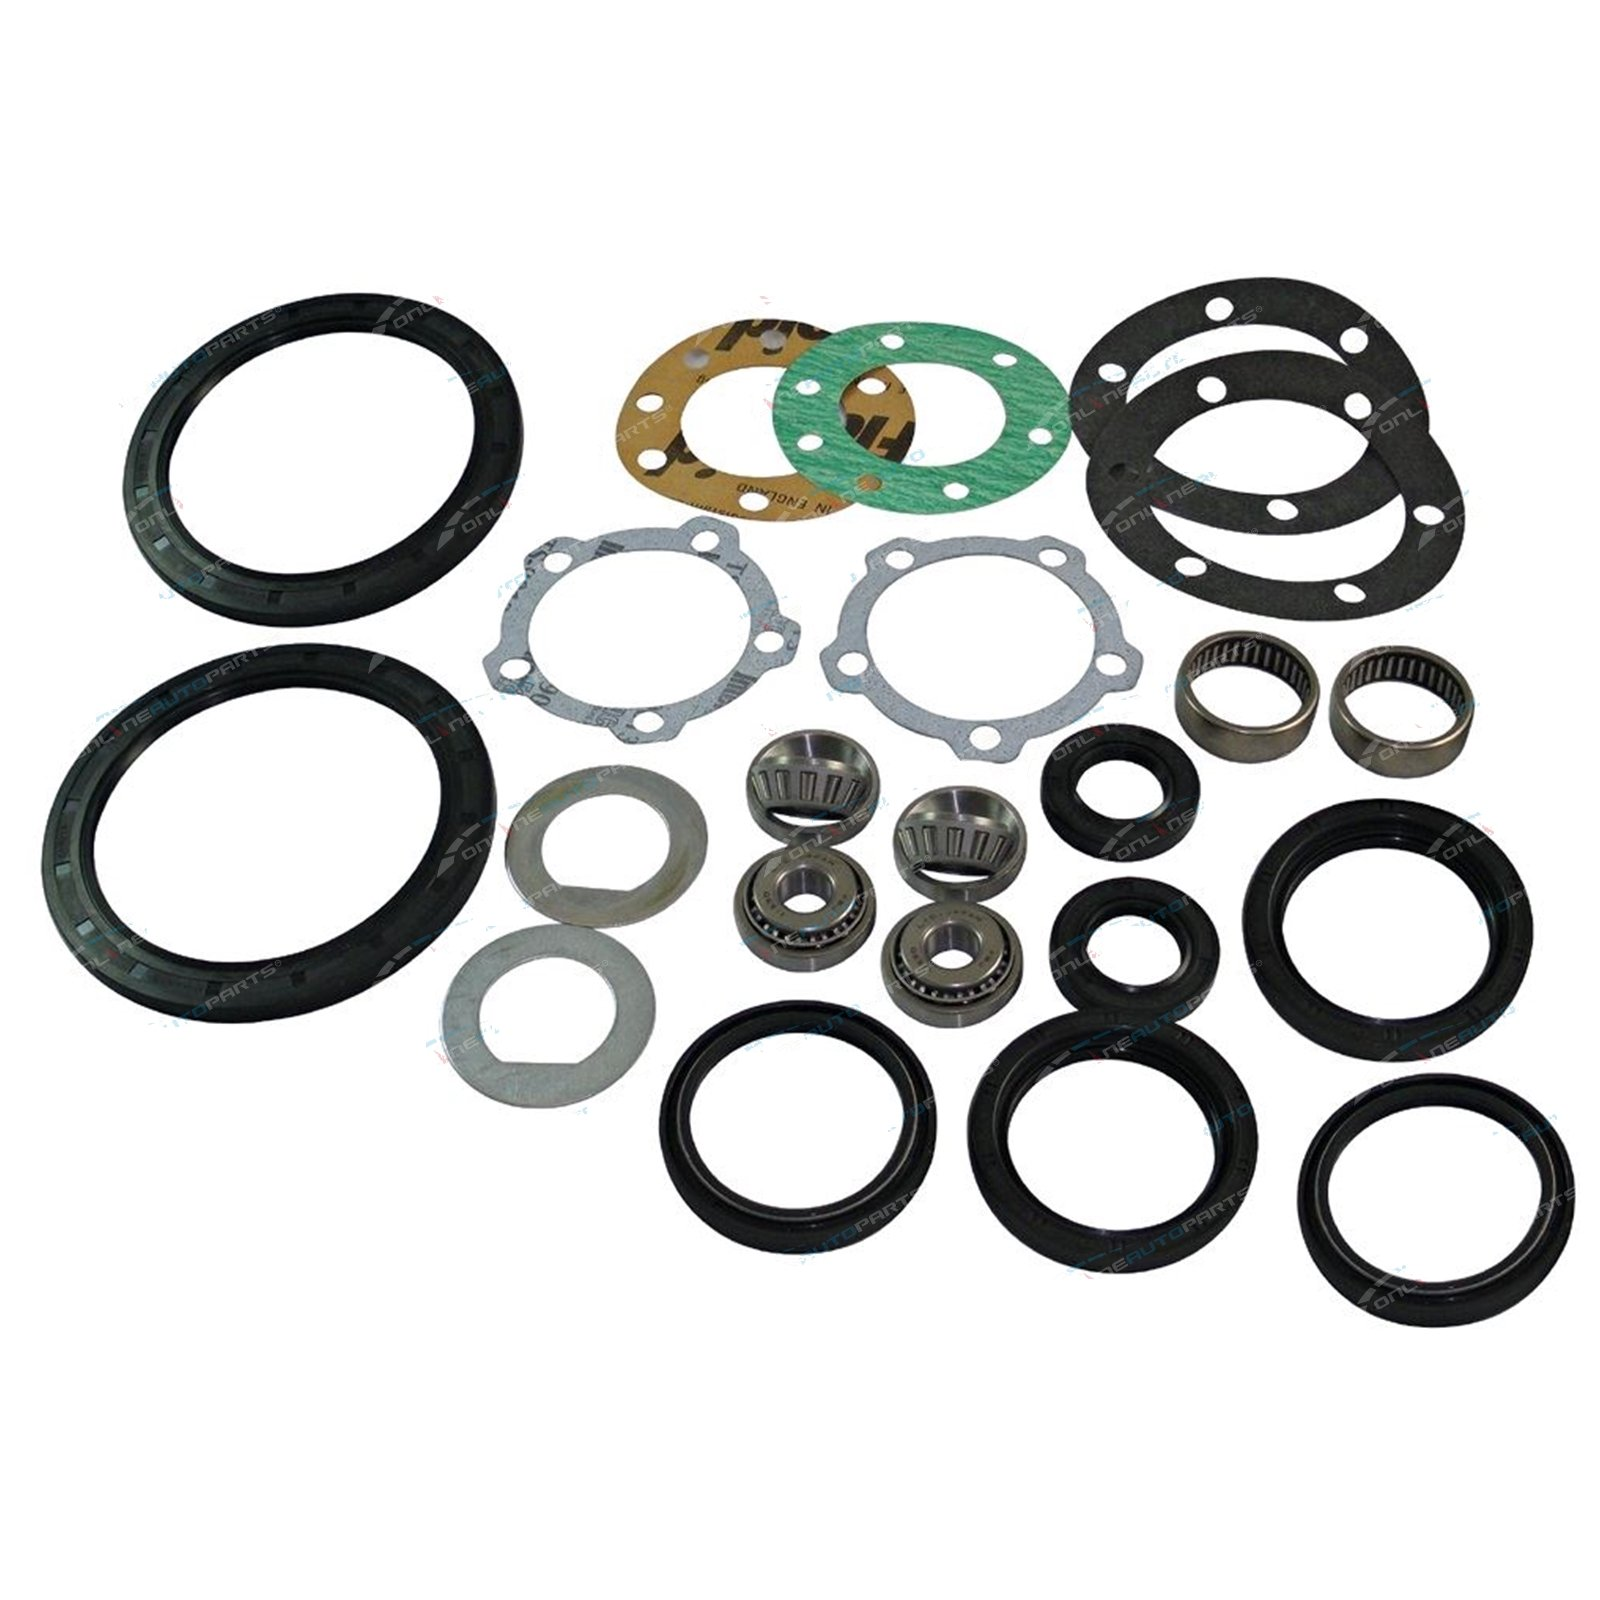 Landrover Defender 90 110 130 Swivel Hub Rebuild Kit